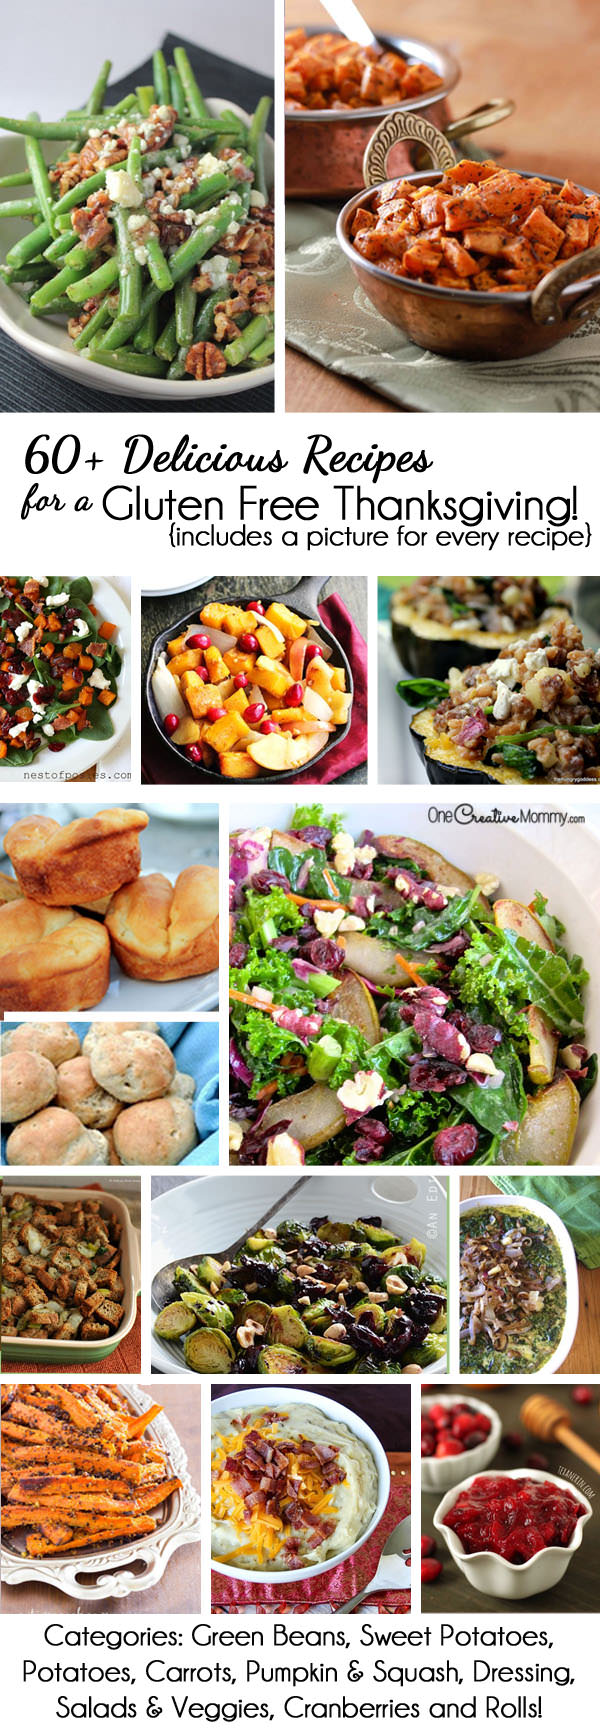 60+ Delicious Recipes for a Gluten Free Thanksgiving {OneCreativeMommy.com} Arranged by category with a photo for every recipe! Plan your meal today.